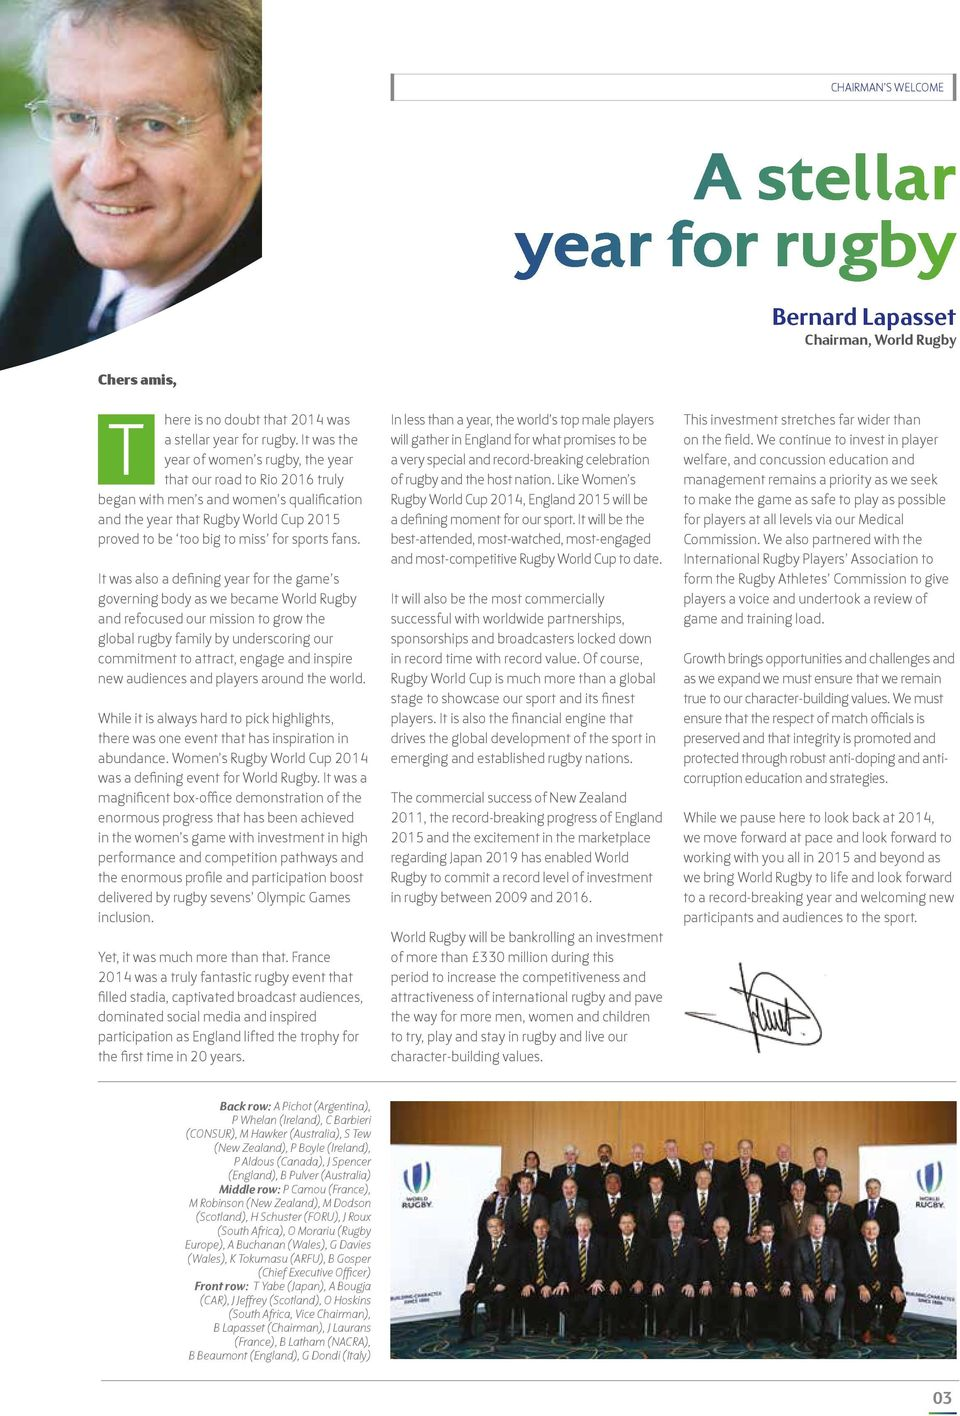 fans. It was also a defining year for the game s governing body as we became World Rugby and refocused our mission to grow the global rugby family by underscoring our commitment to attract, engage